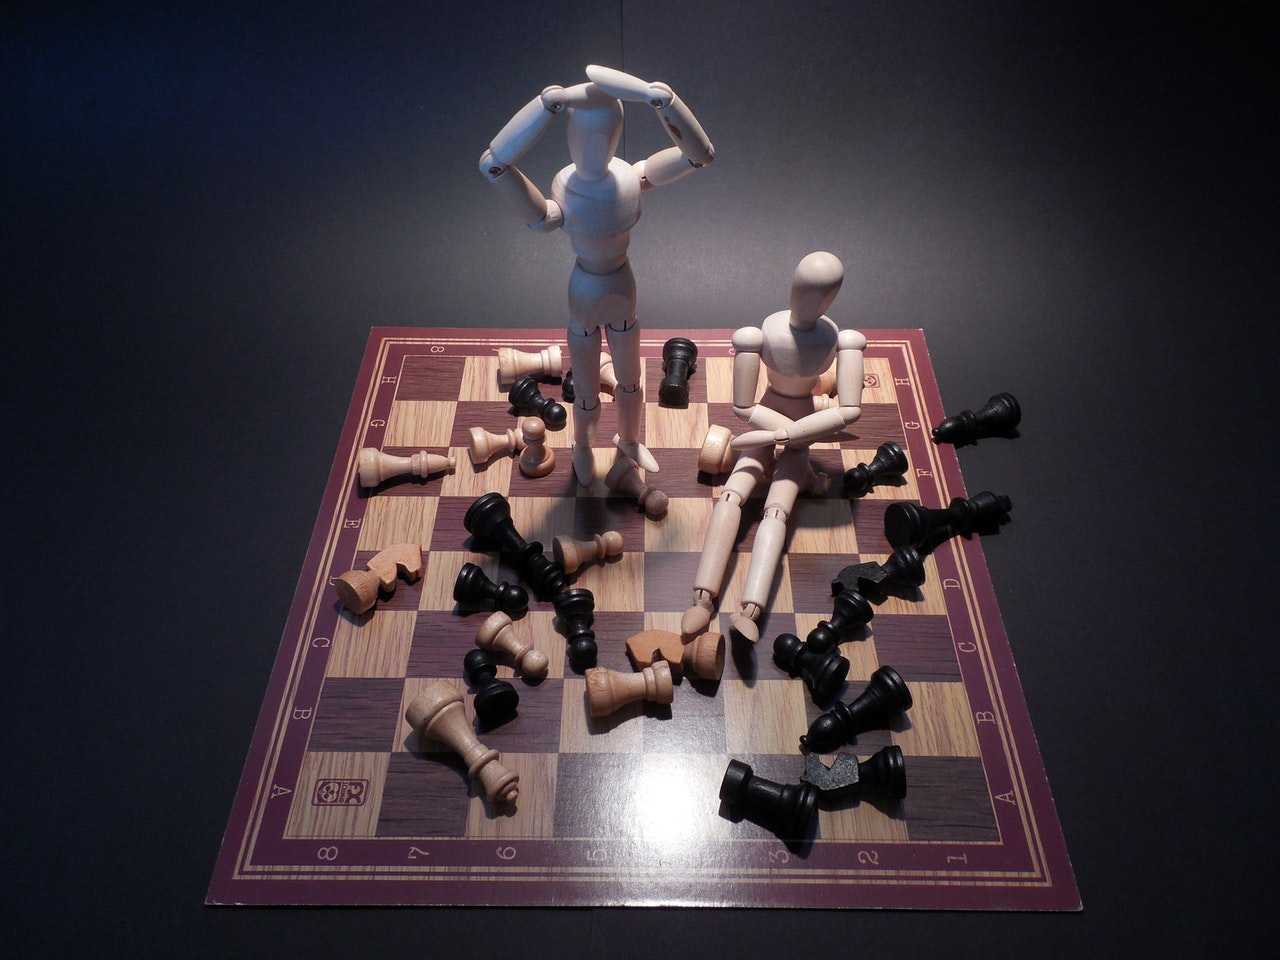 Photo of chess board with all the pieces knocked over and two wooden human figurines with their hands on their head trying to figure out how to overcome their mistakes.